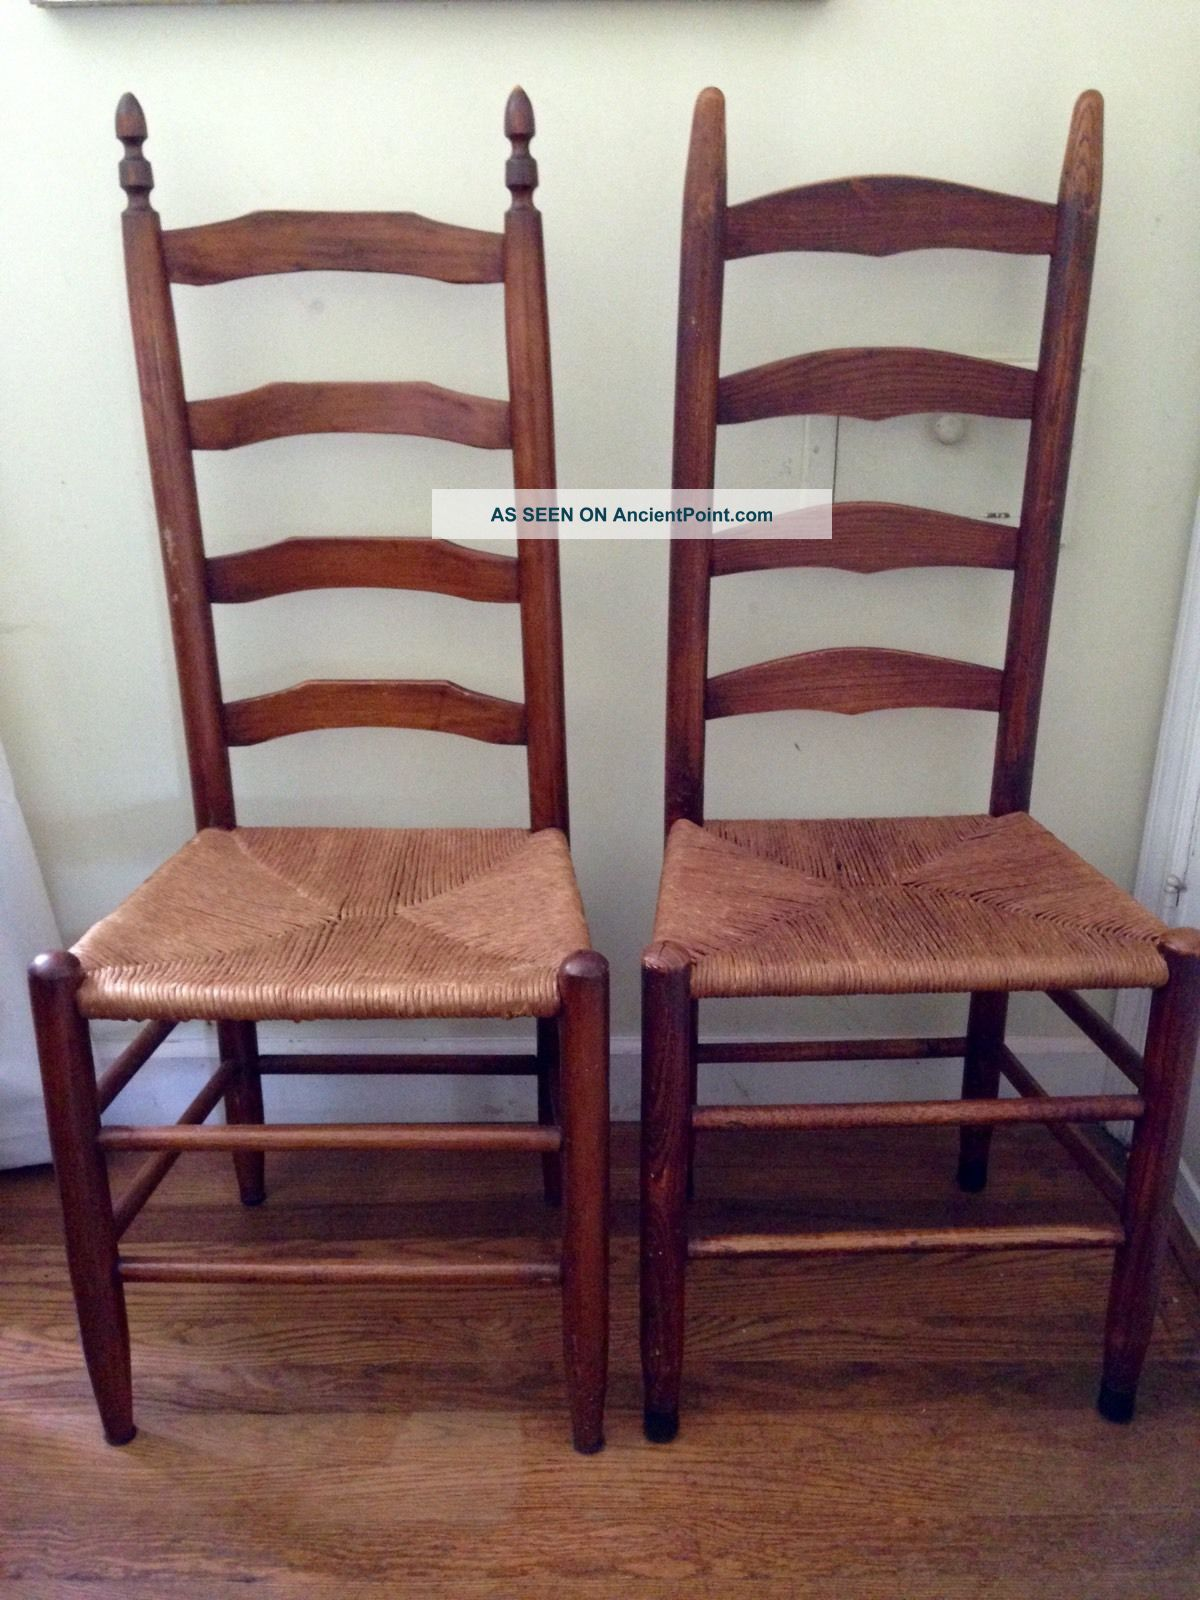 Antique Ladder Back Four Rung Rush Cane Seat Side Chairs - 1900-1950 photo